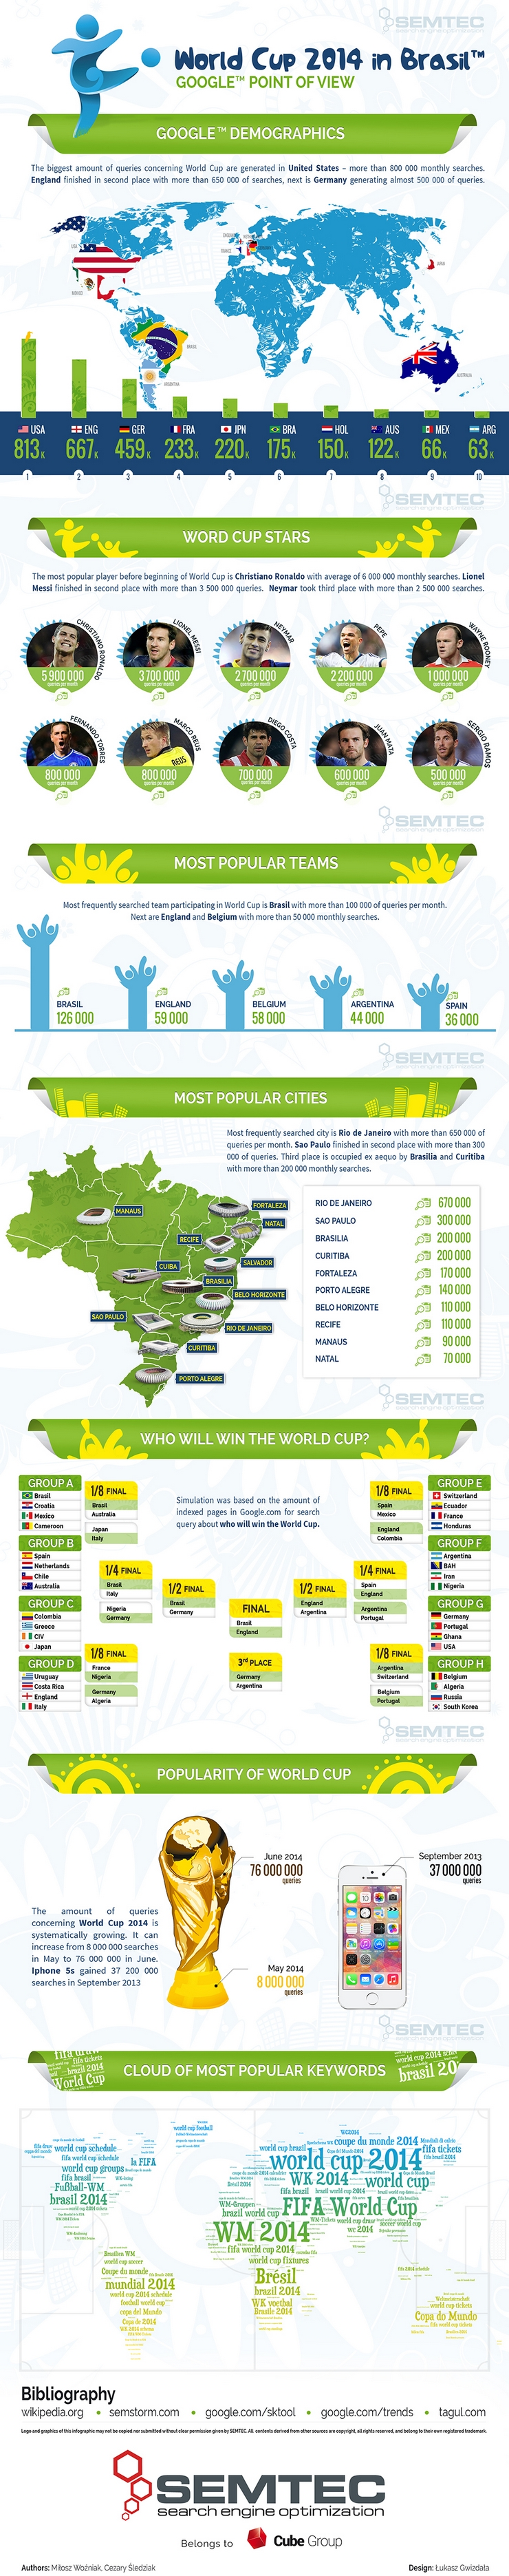 World Cup 2014 Brazil by Google - infographic